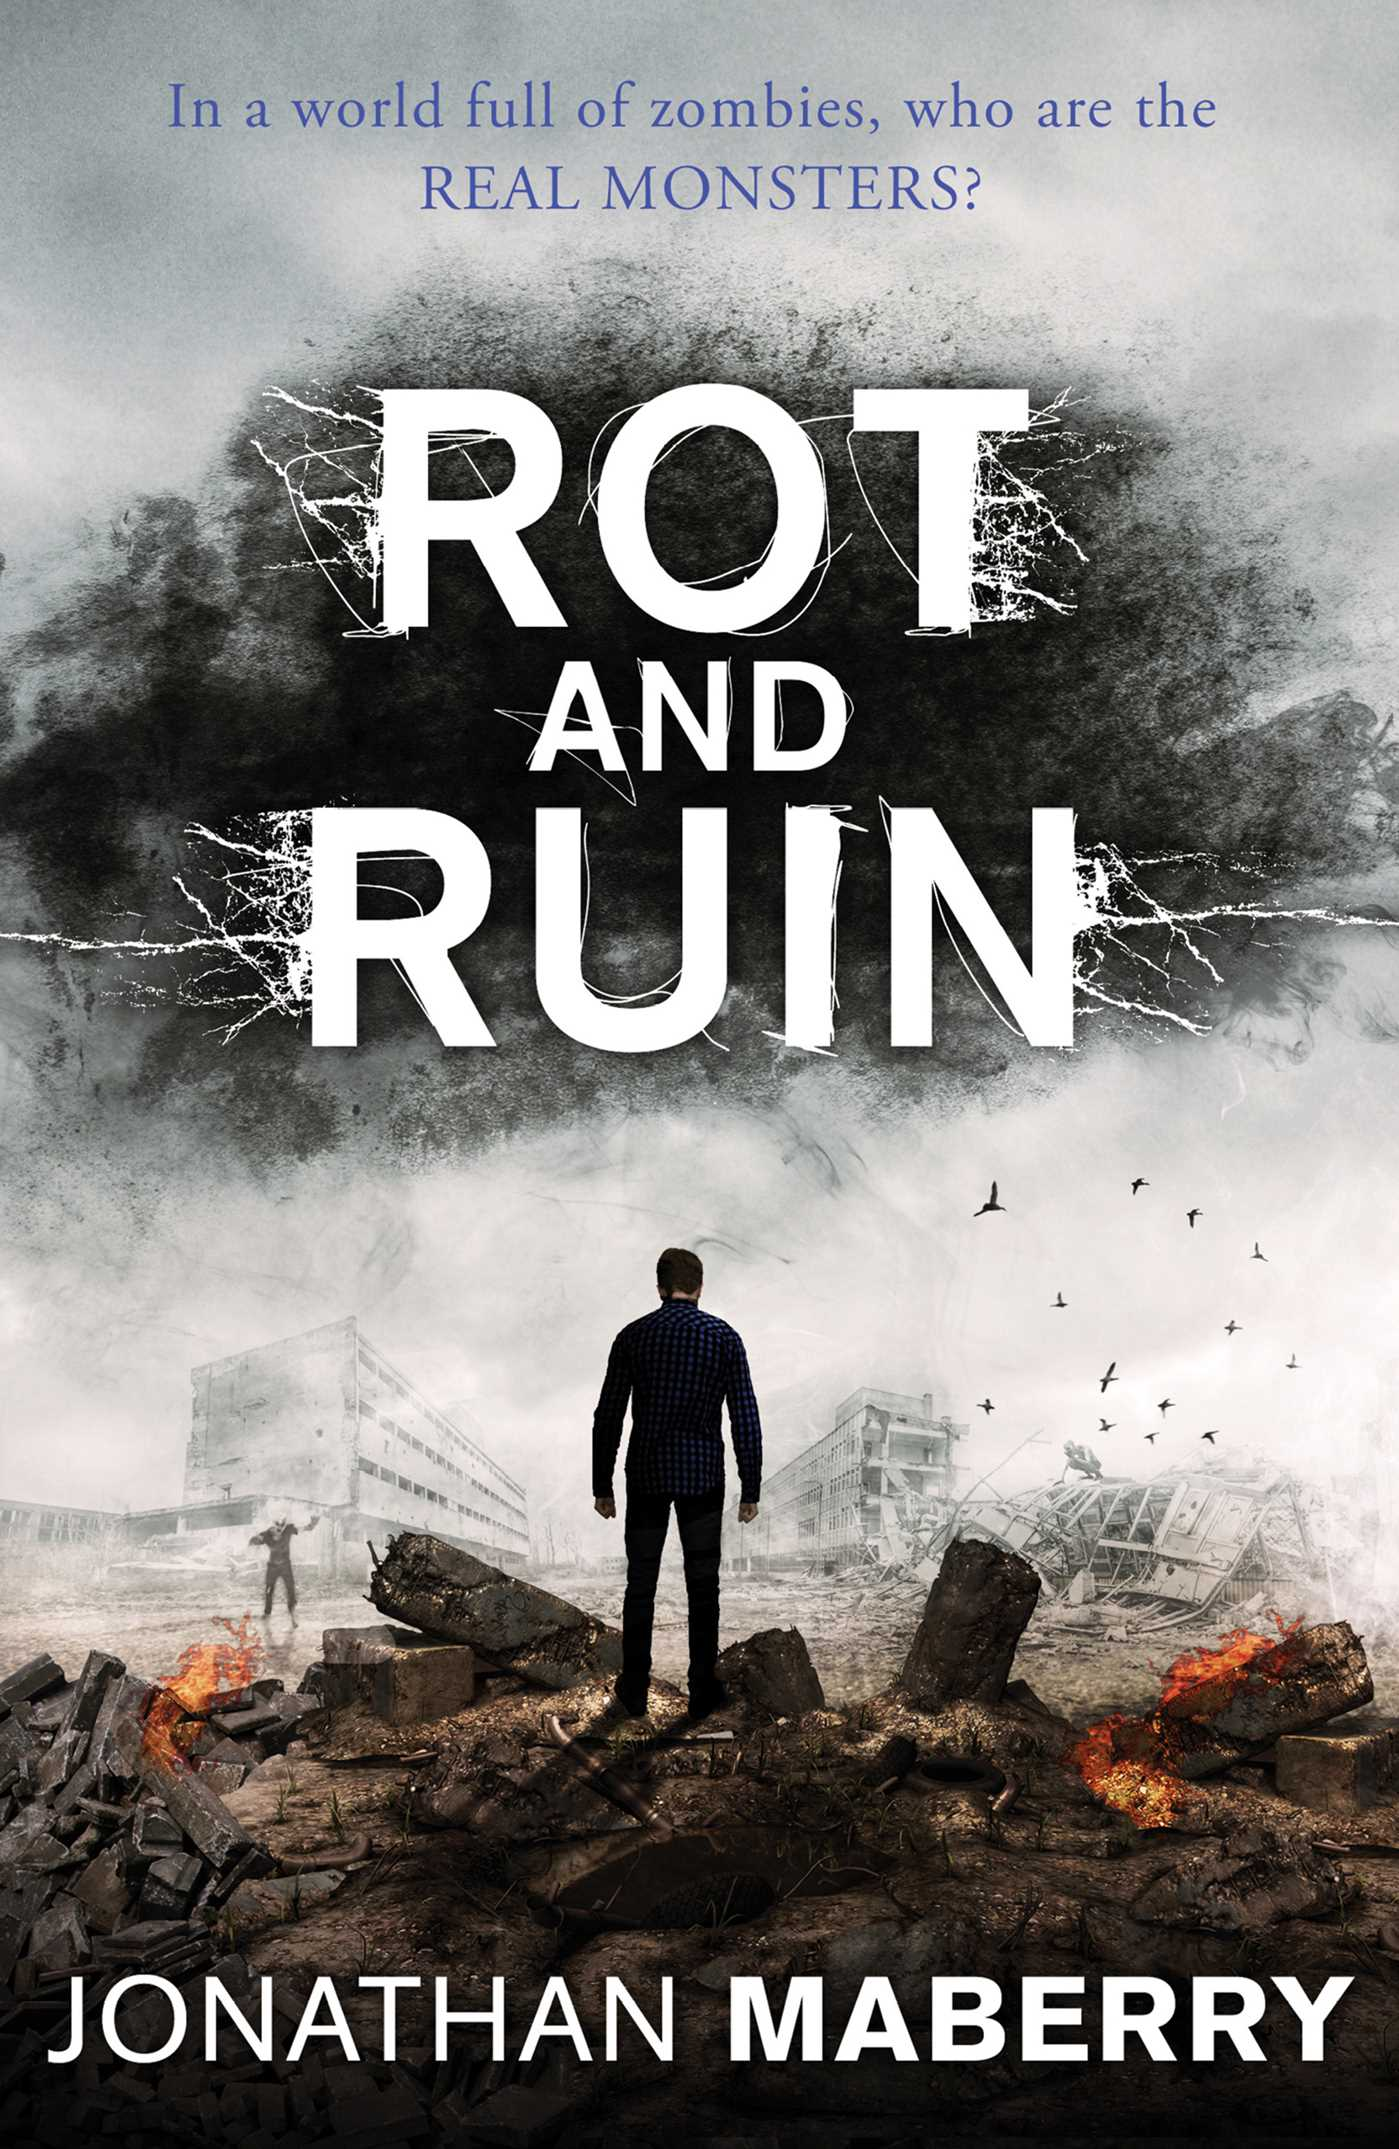 Rot and ruin 9781471144882 hr